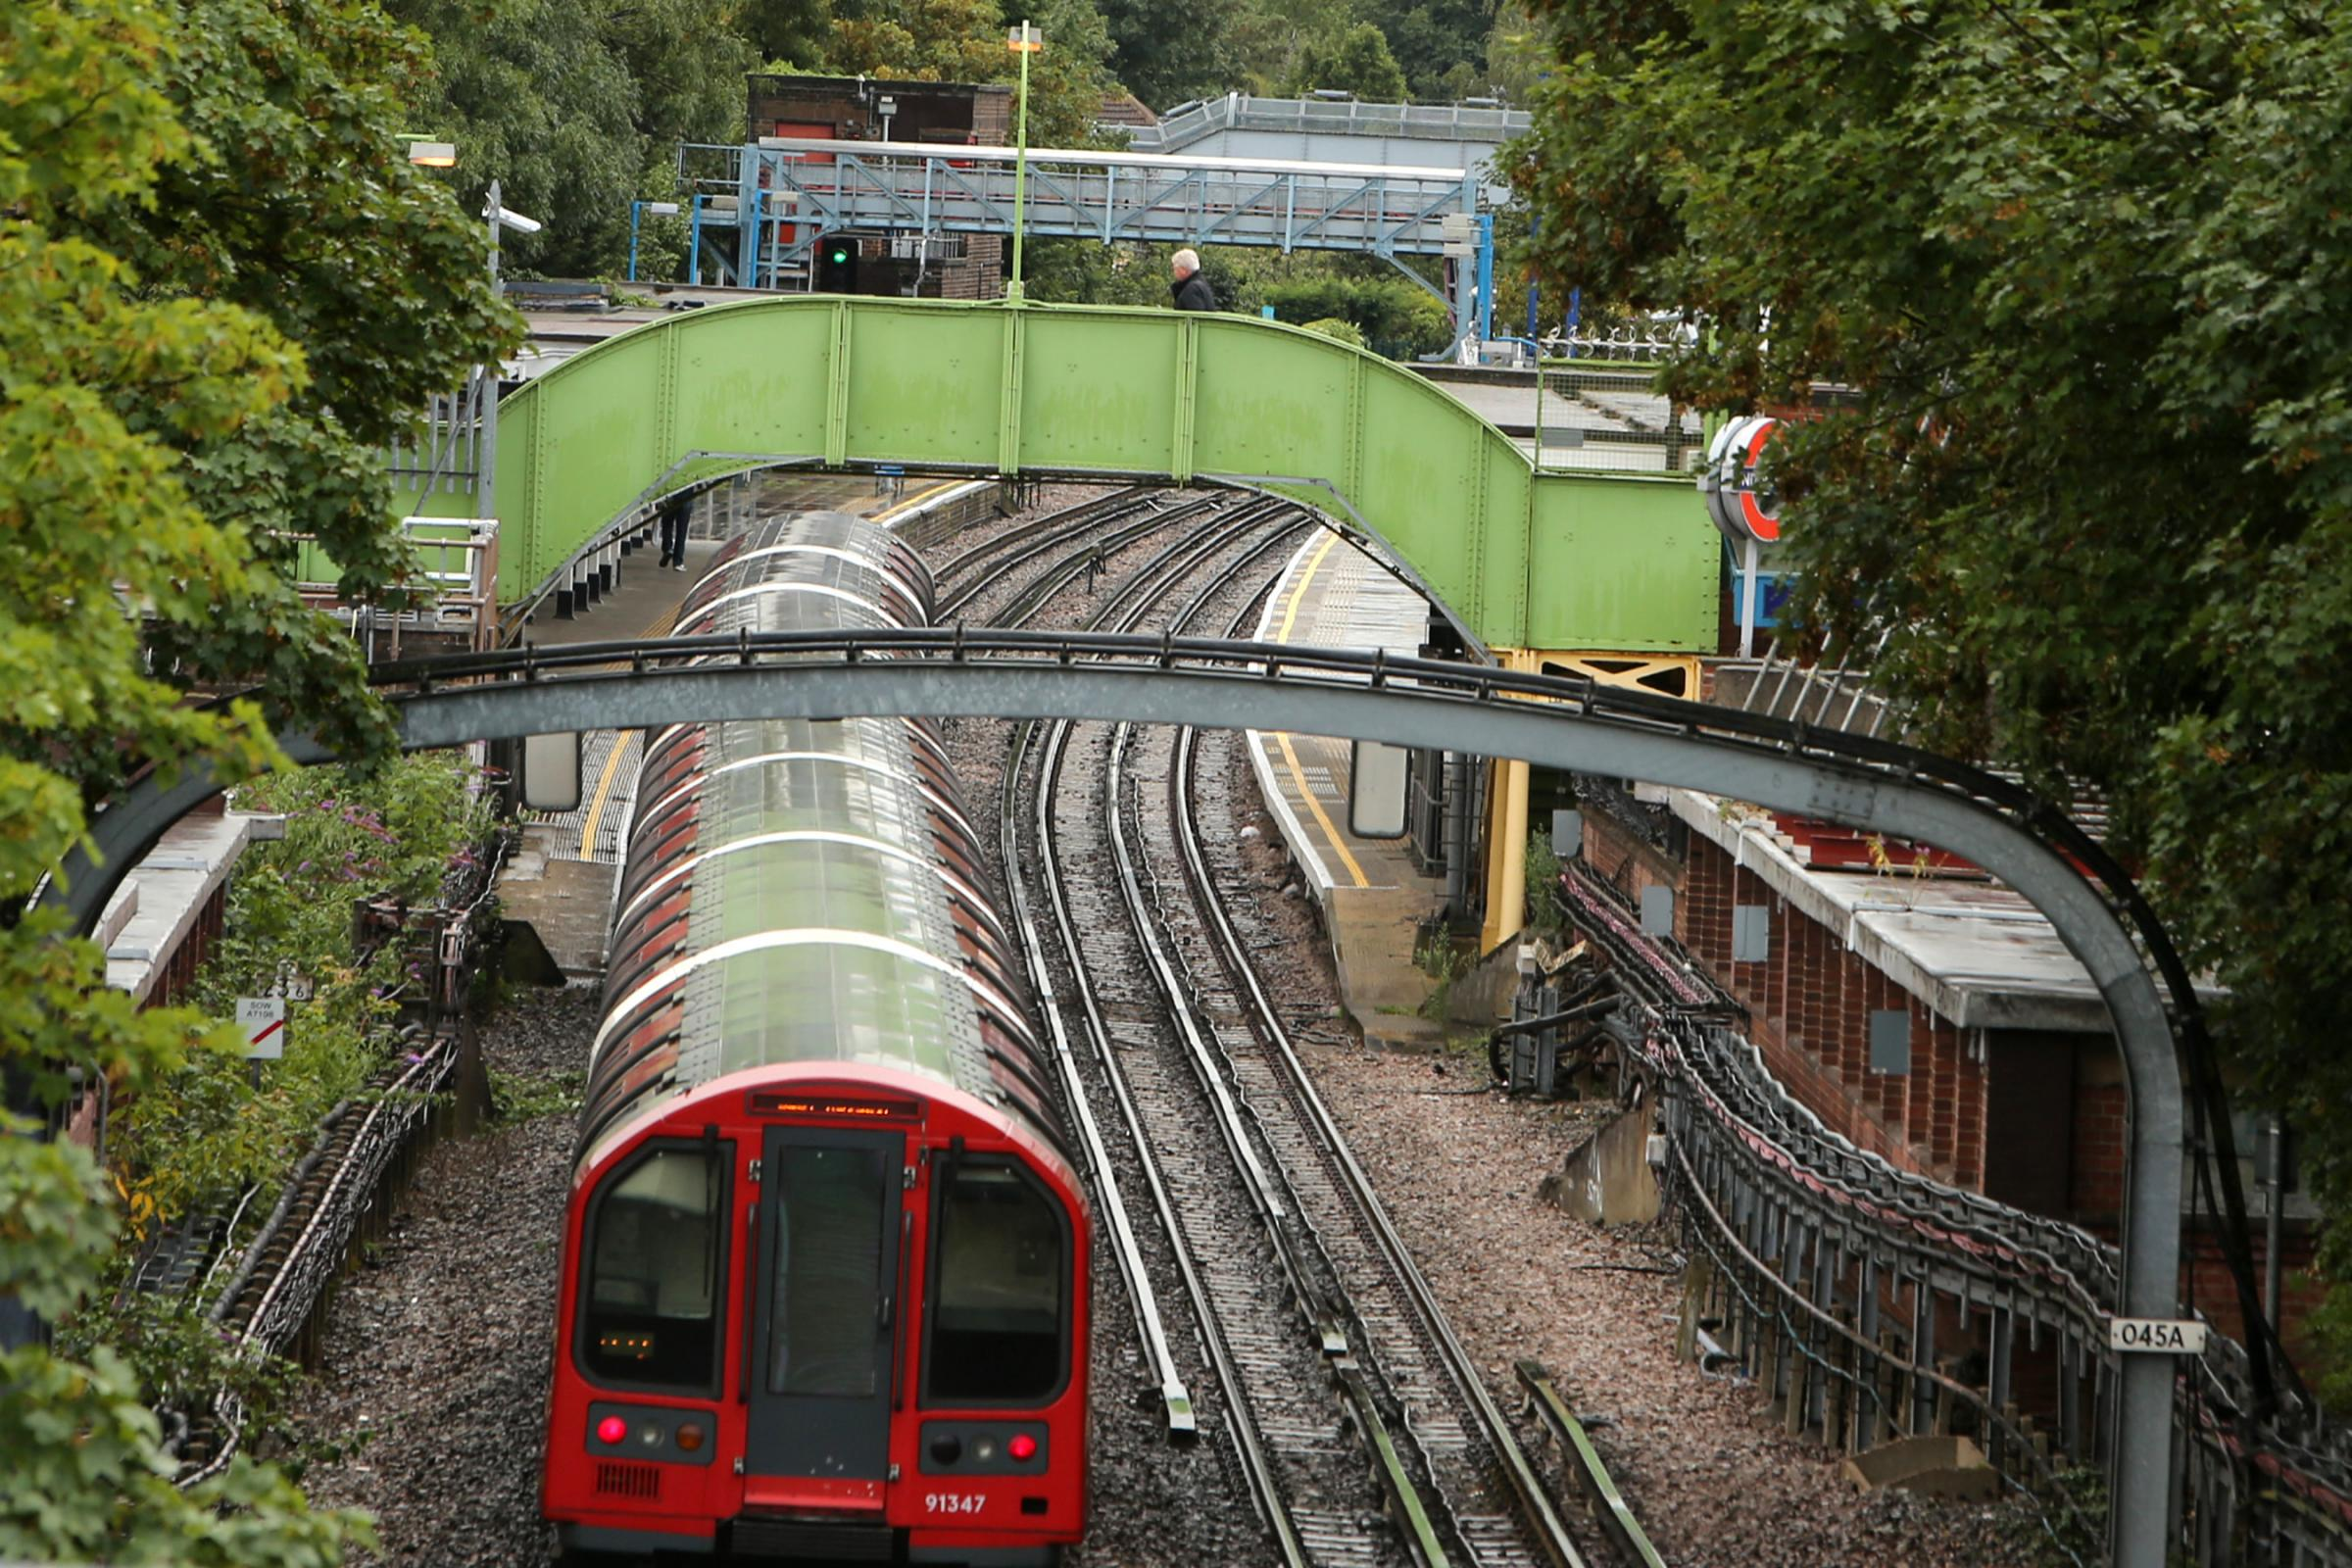 Are you planning on using the Piccadilly line on your commute this evening?